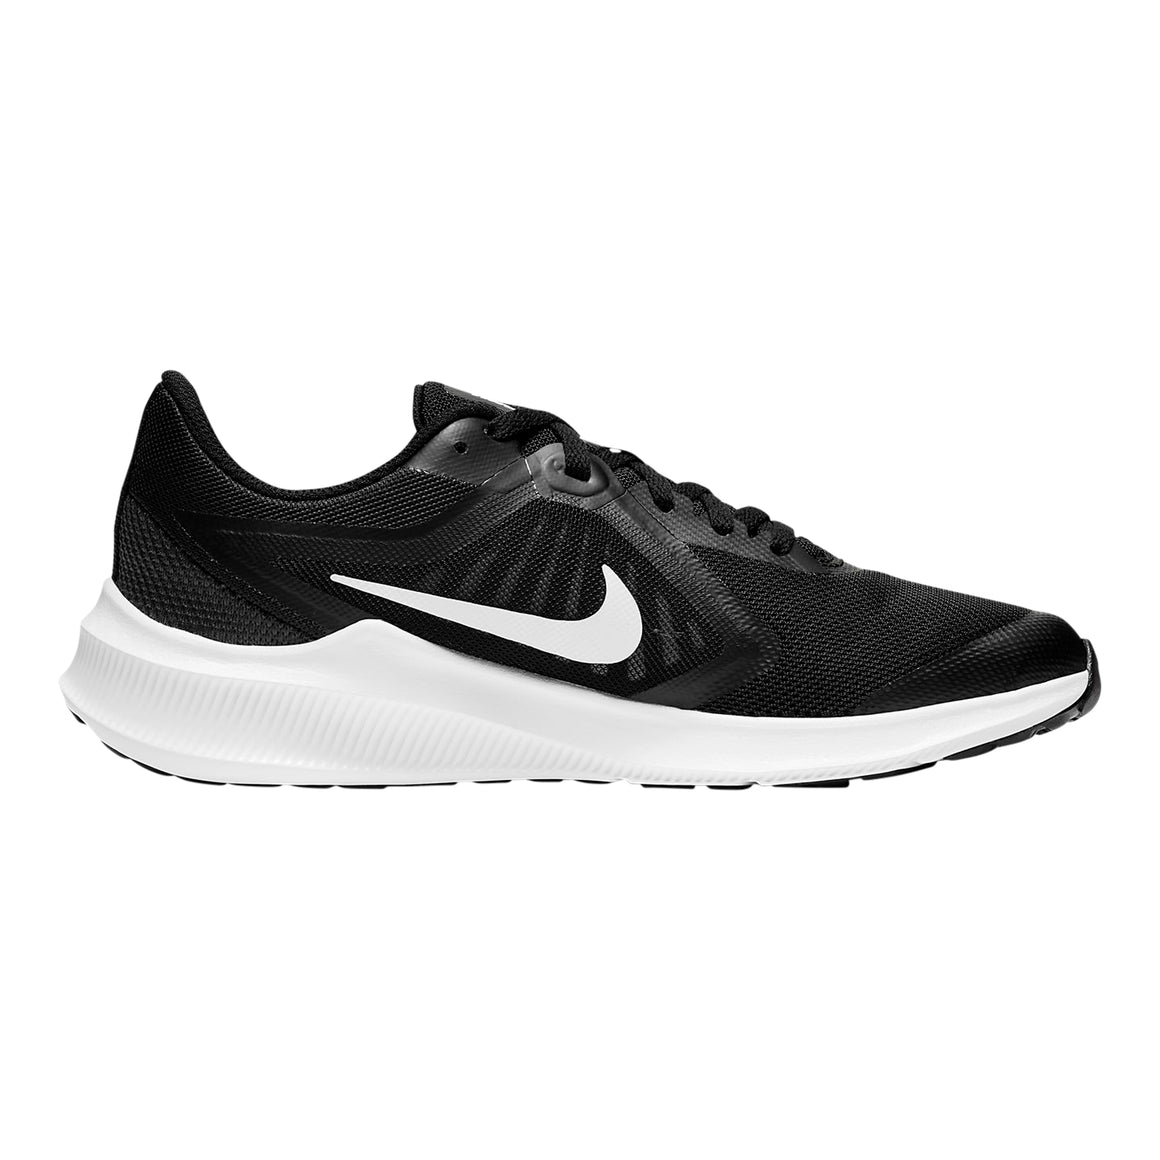 Downshifter 10 Running Shoes for Older Kids in Black/White-Anthracite